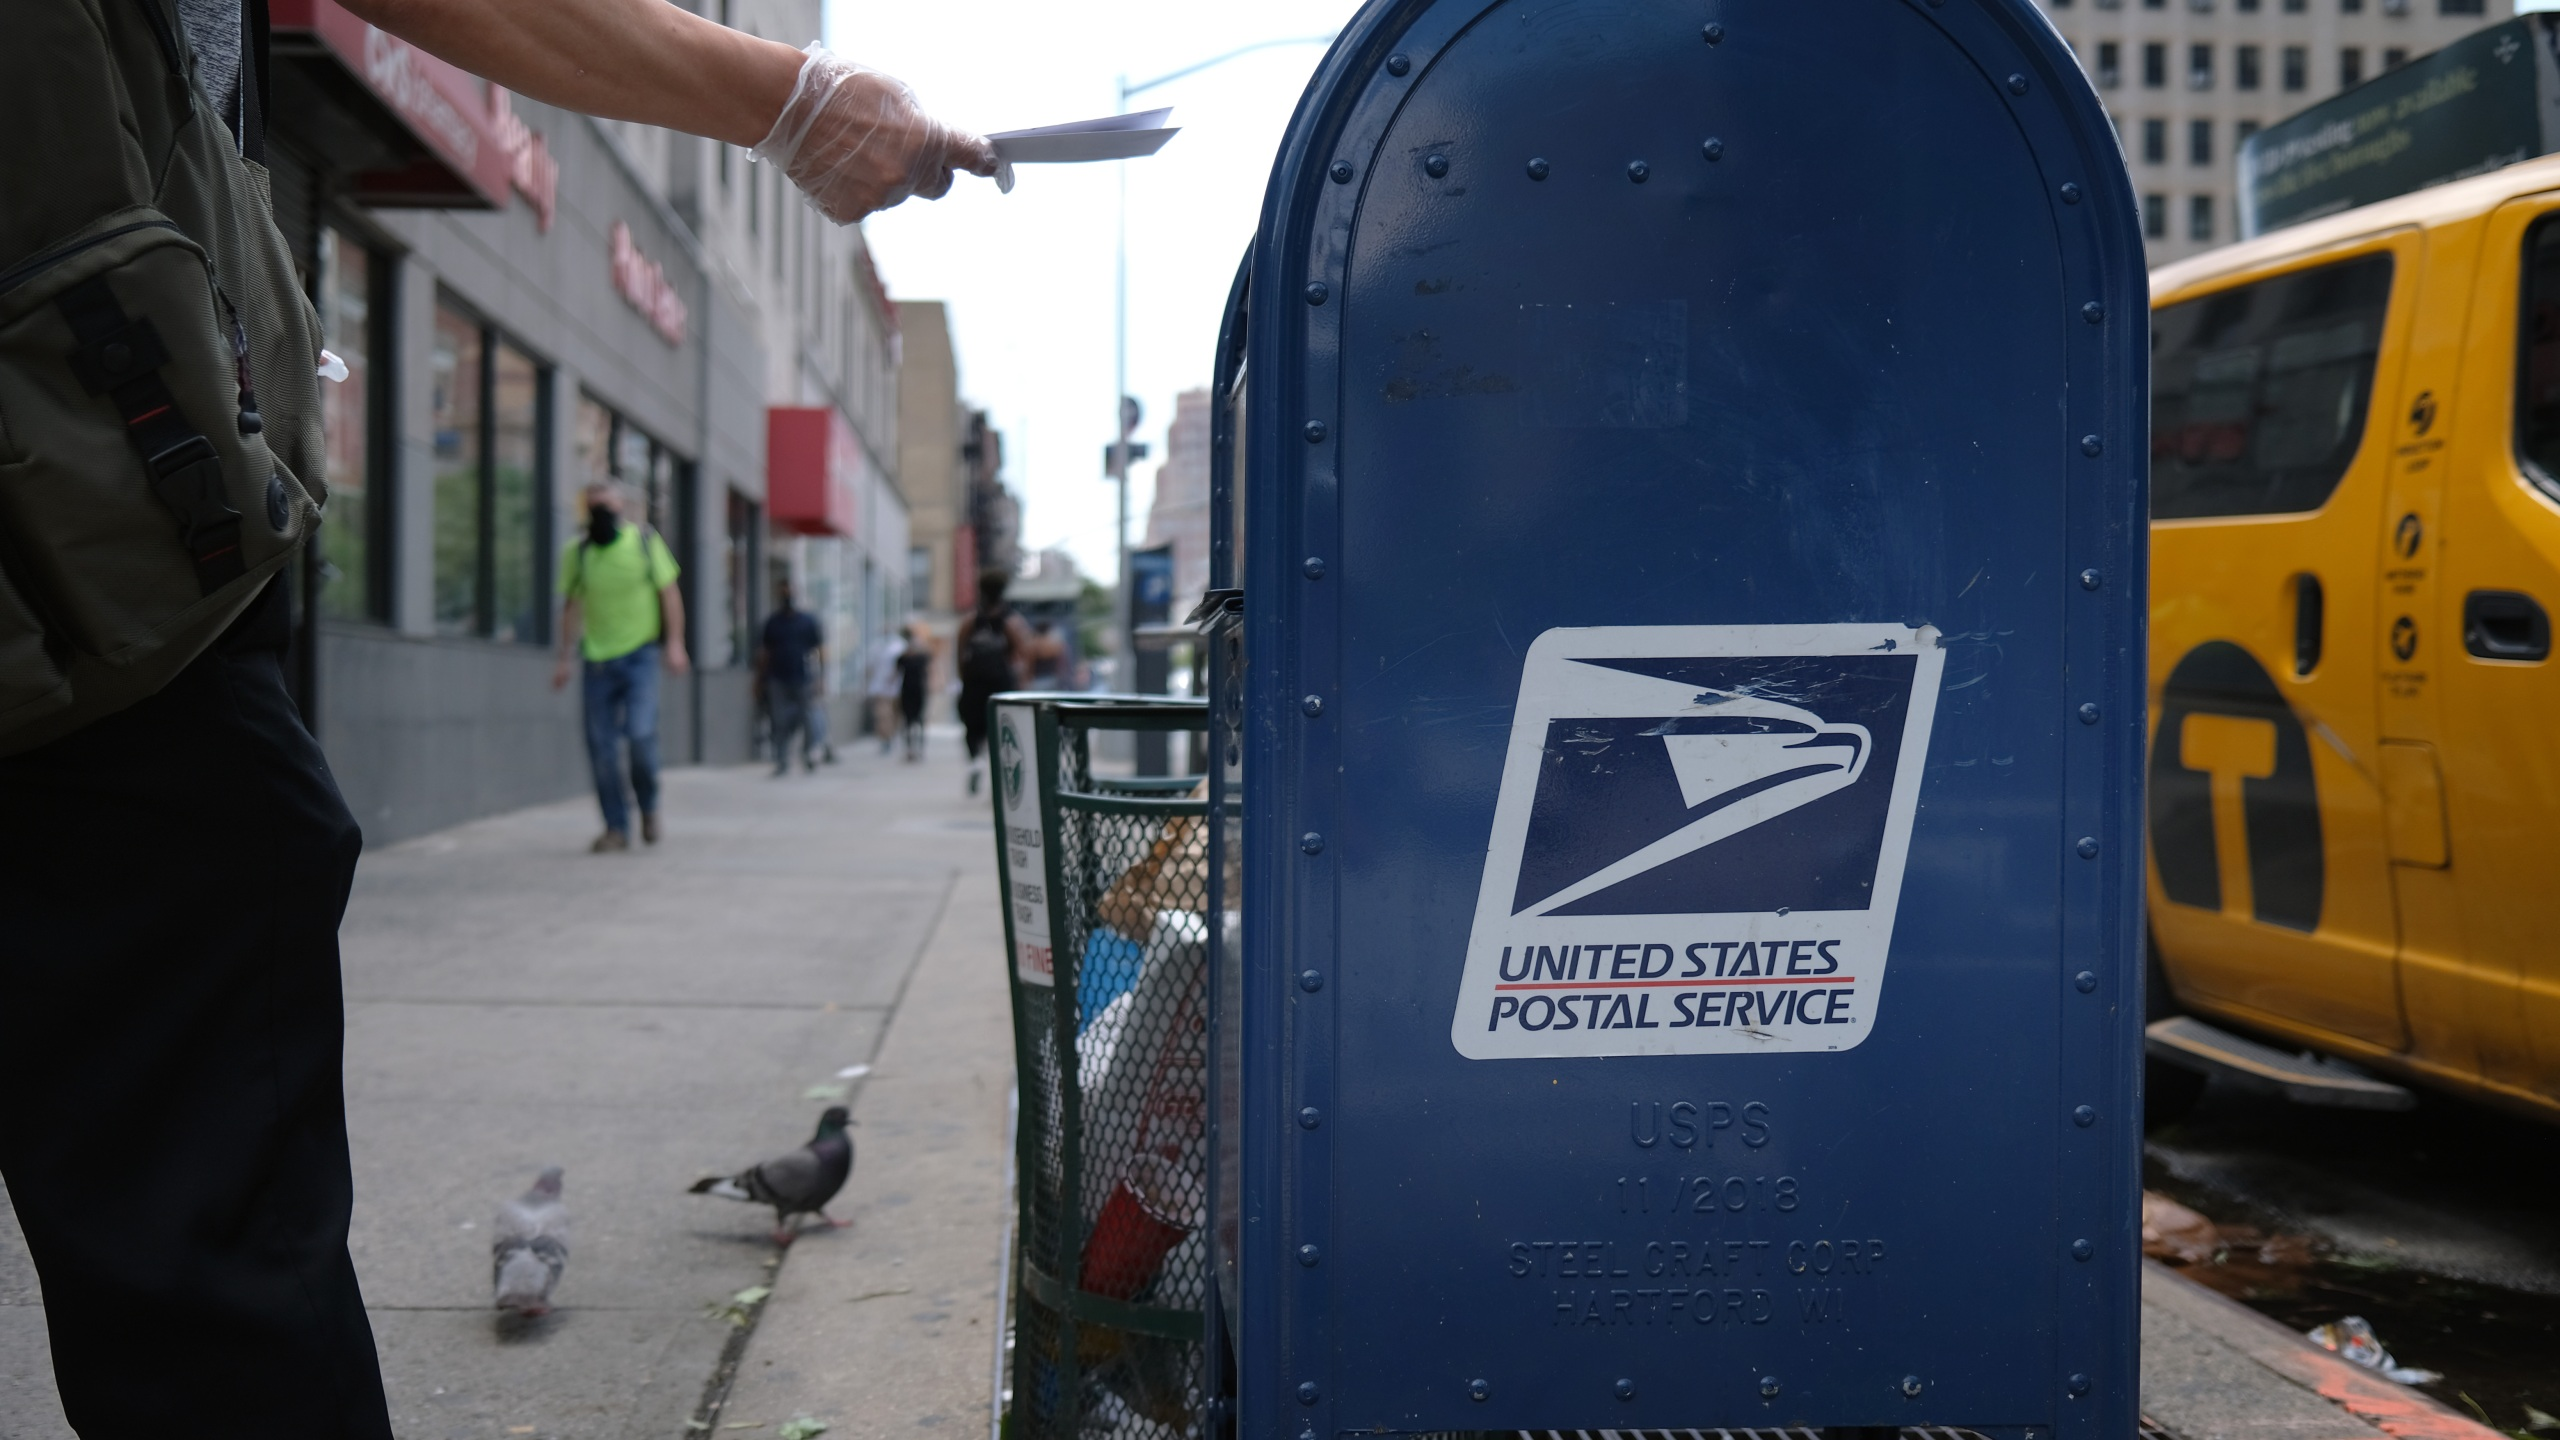 A U.S. Postal Service mail box stands in Manhattan on Aug. 5, 2020 in New York City. (Spencer Platt/Getty Images)